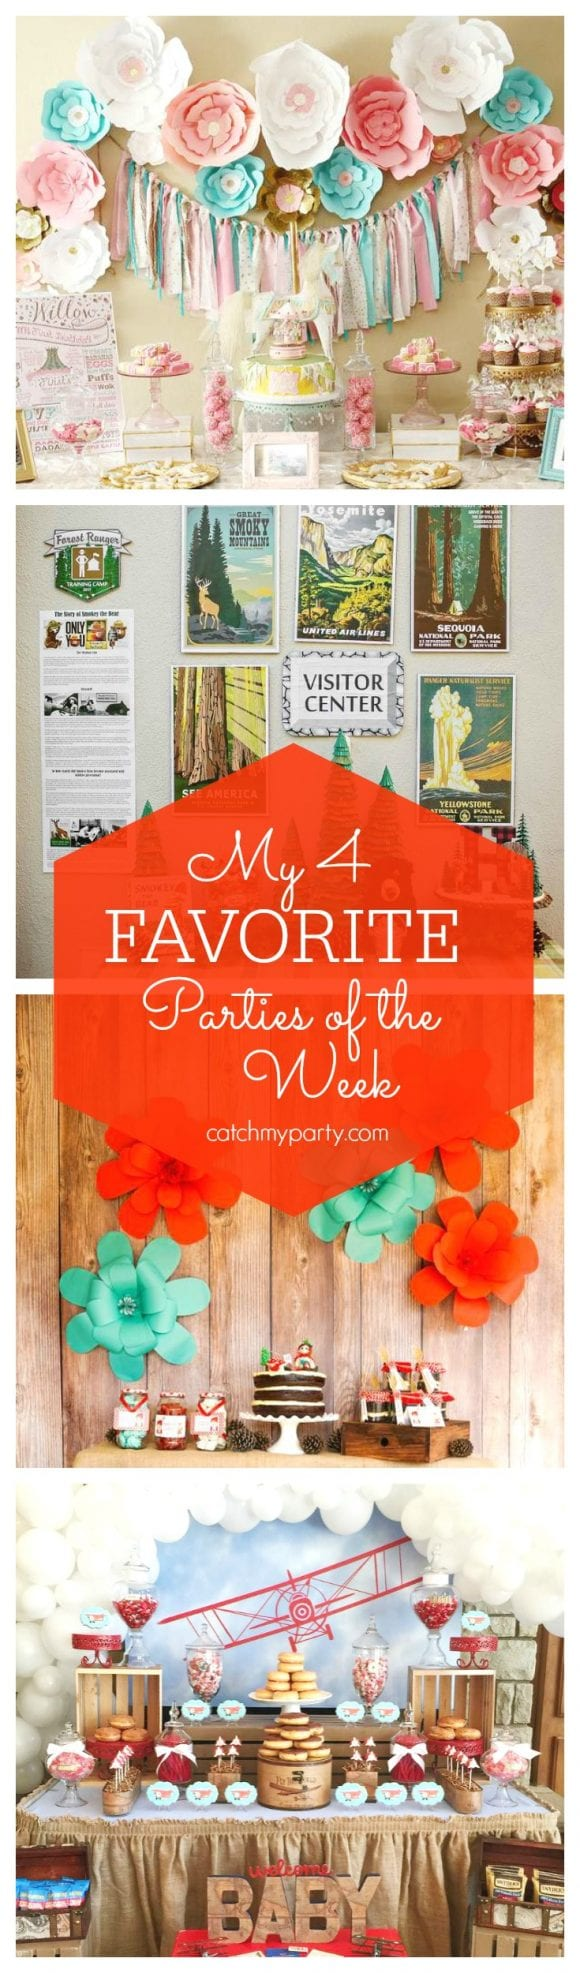 My 4 Favorite Parties of the Week are a magical Carousel 1st birthday, a National Park party, a Little Red Riding Hood Picnic party and a vintage airplane Baby Shower | CatchMyParty.com